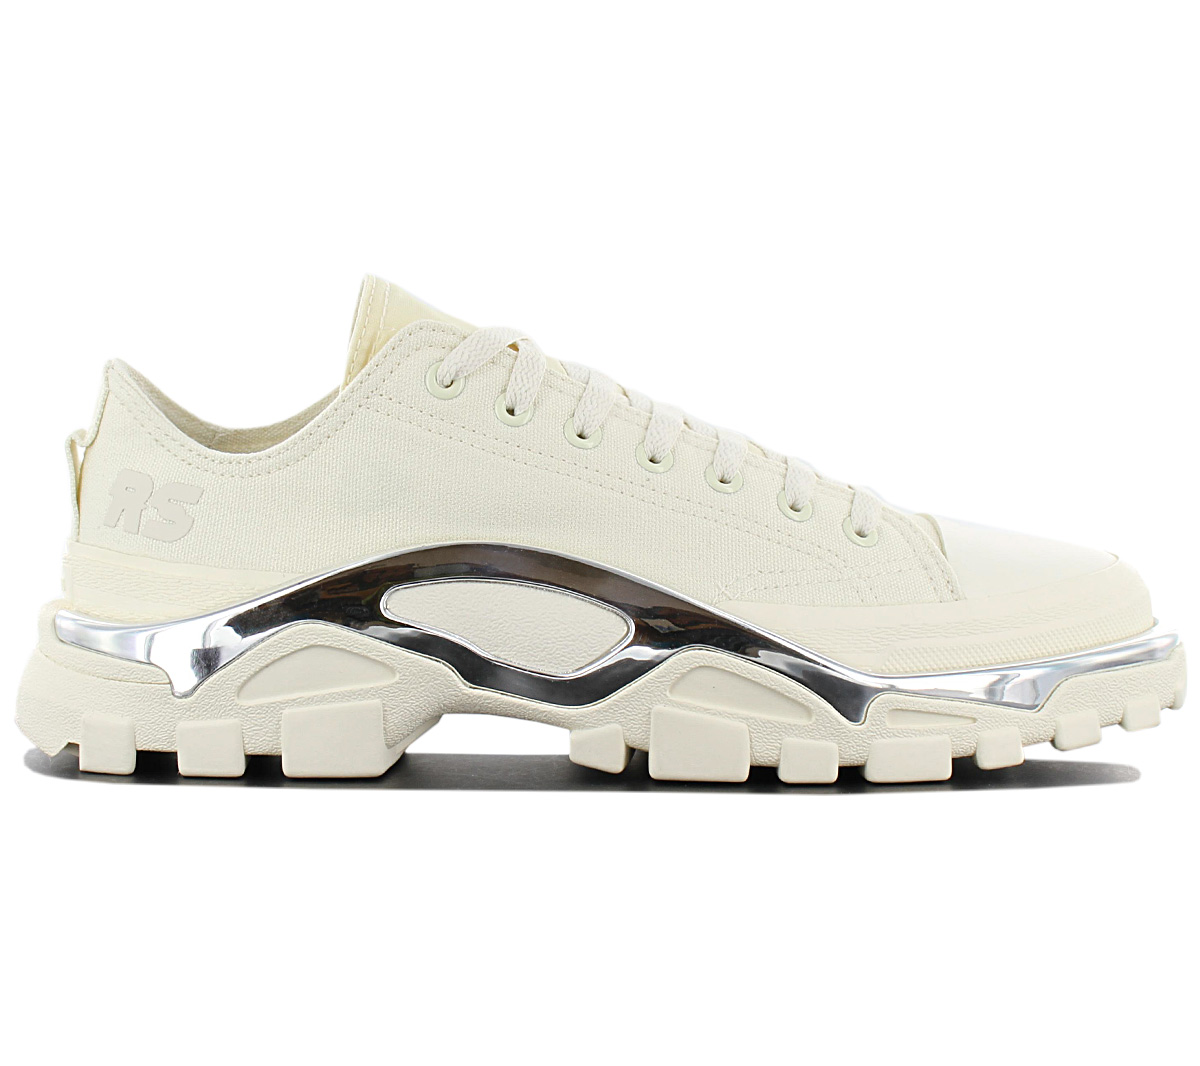 Details about Adidas x Raf Simons Detroit Runner RS F34242 Mens Sneaker Shoes CreamWhite show original title